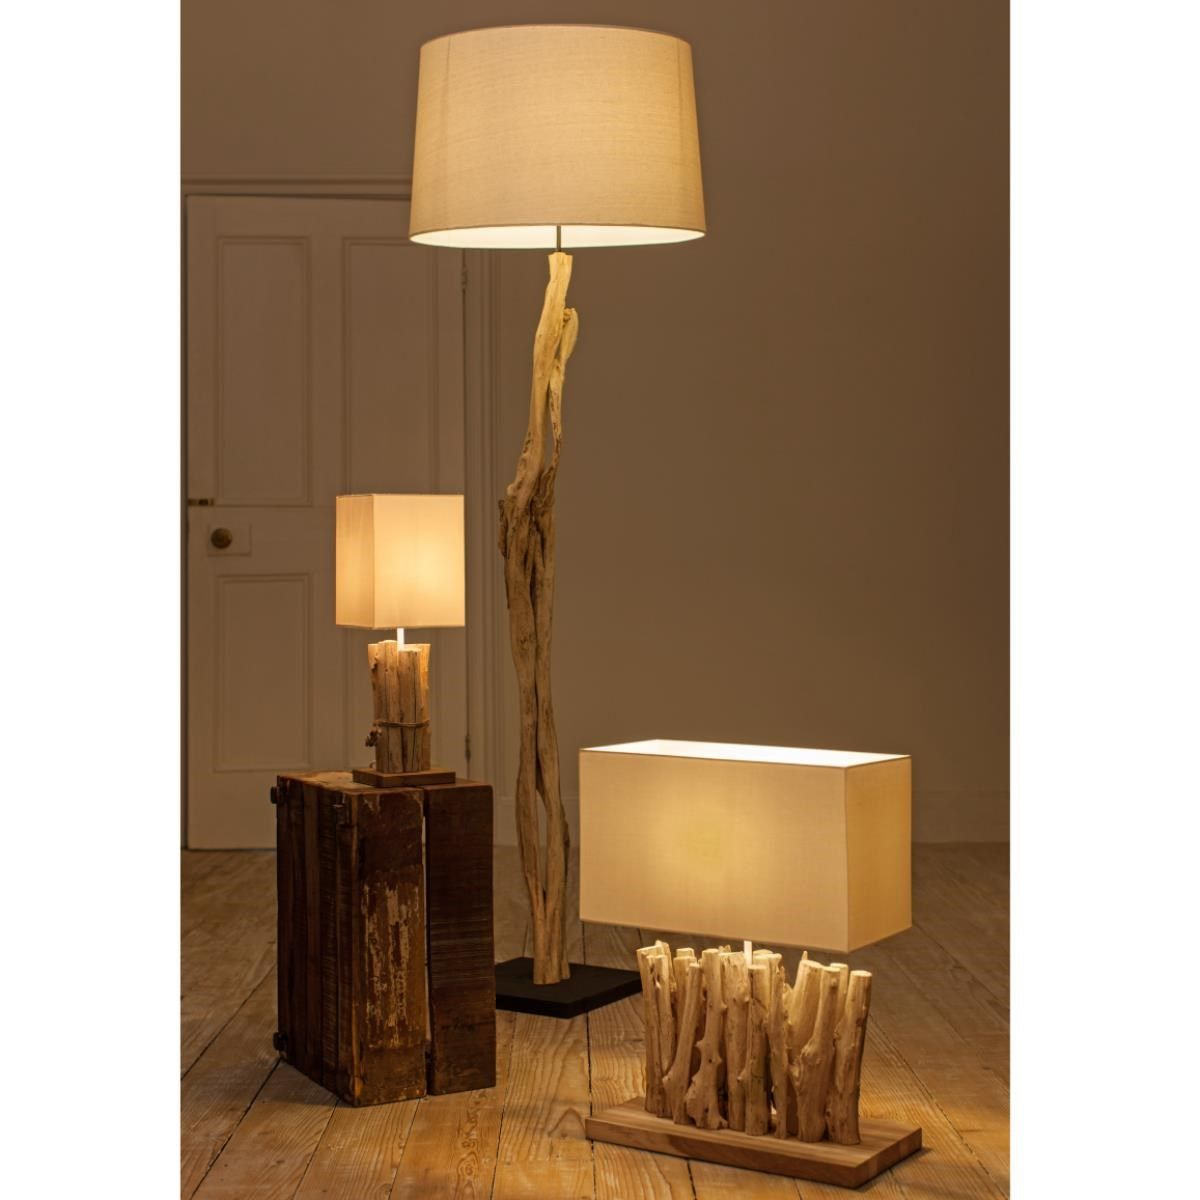 driftwood for lamp lamps l table lighting or large sale at f furniture floor id